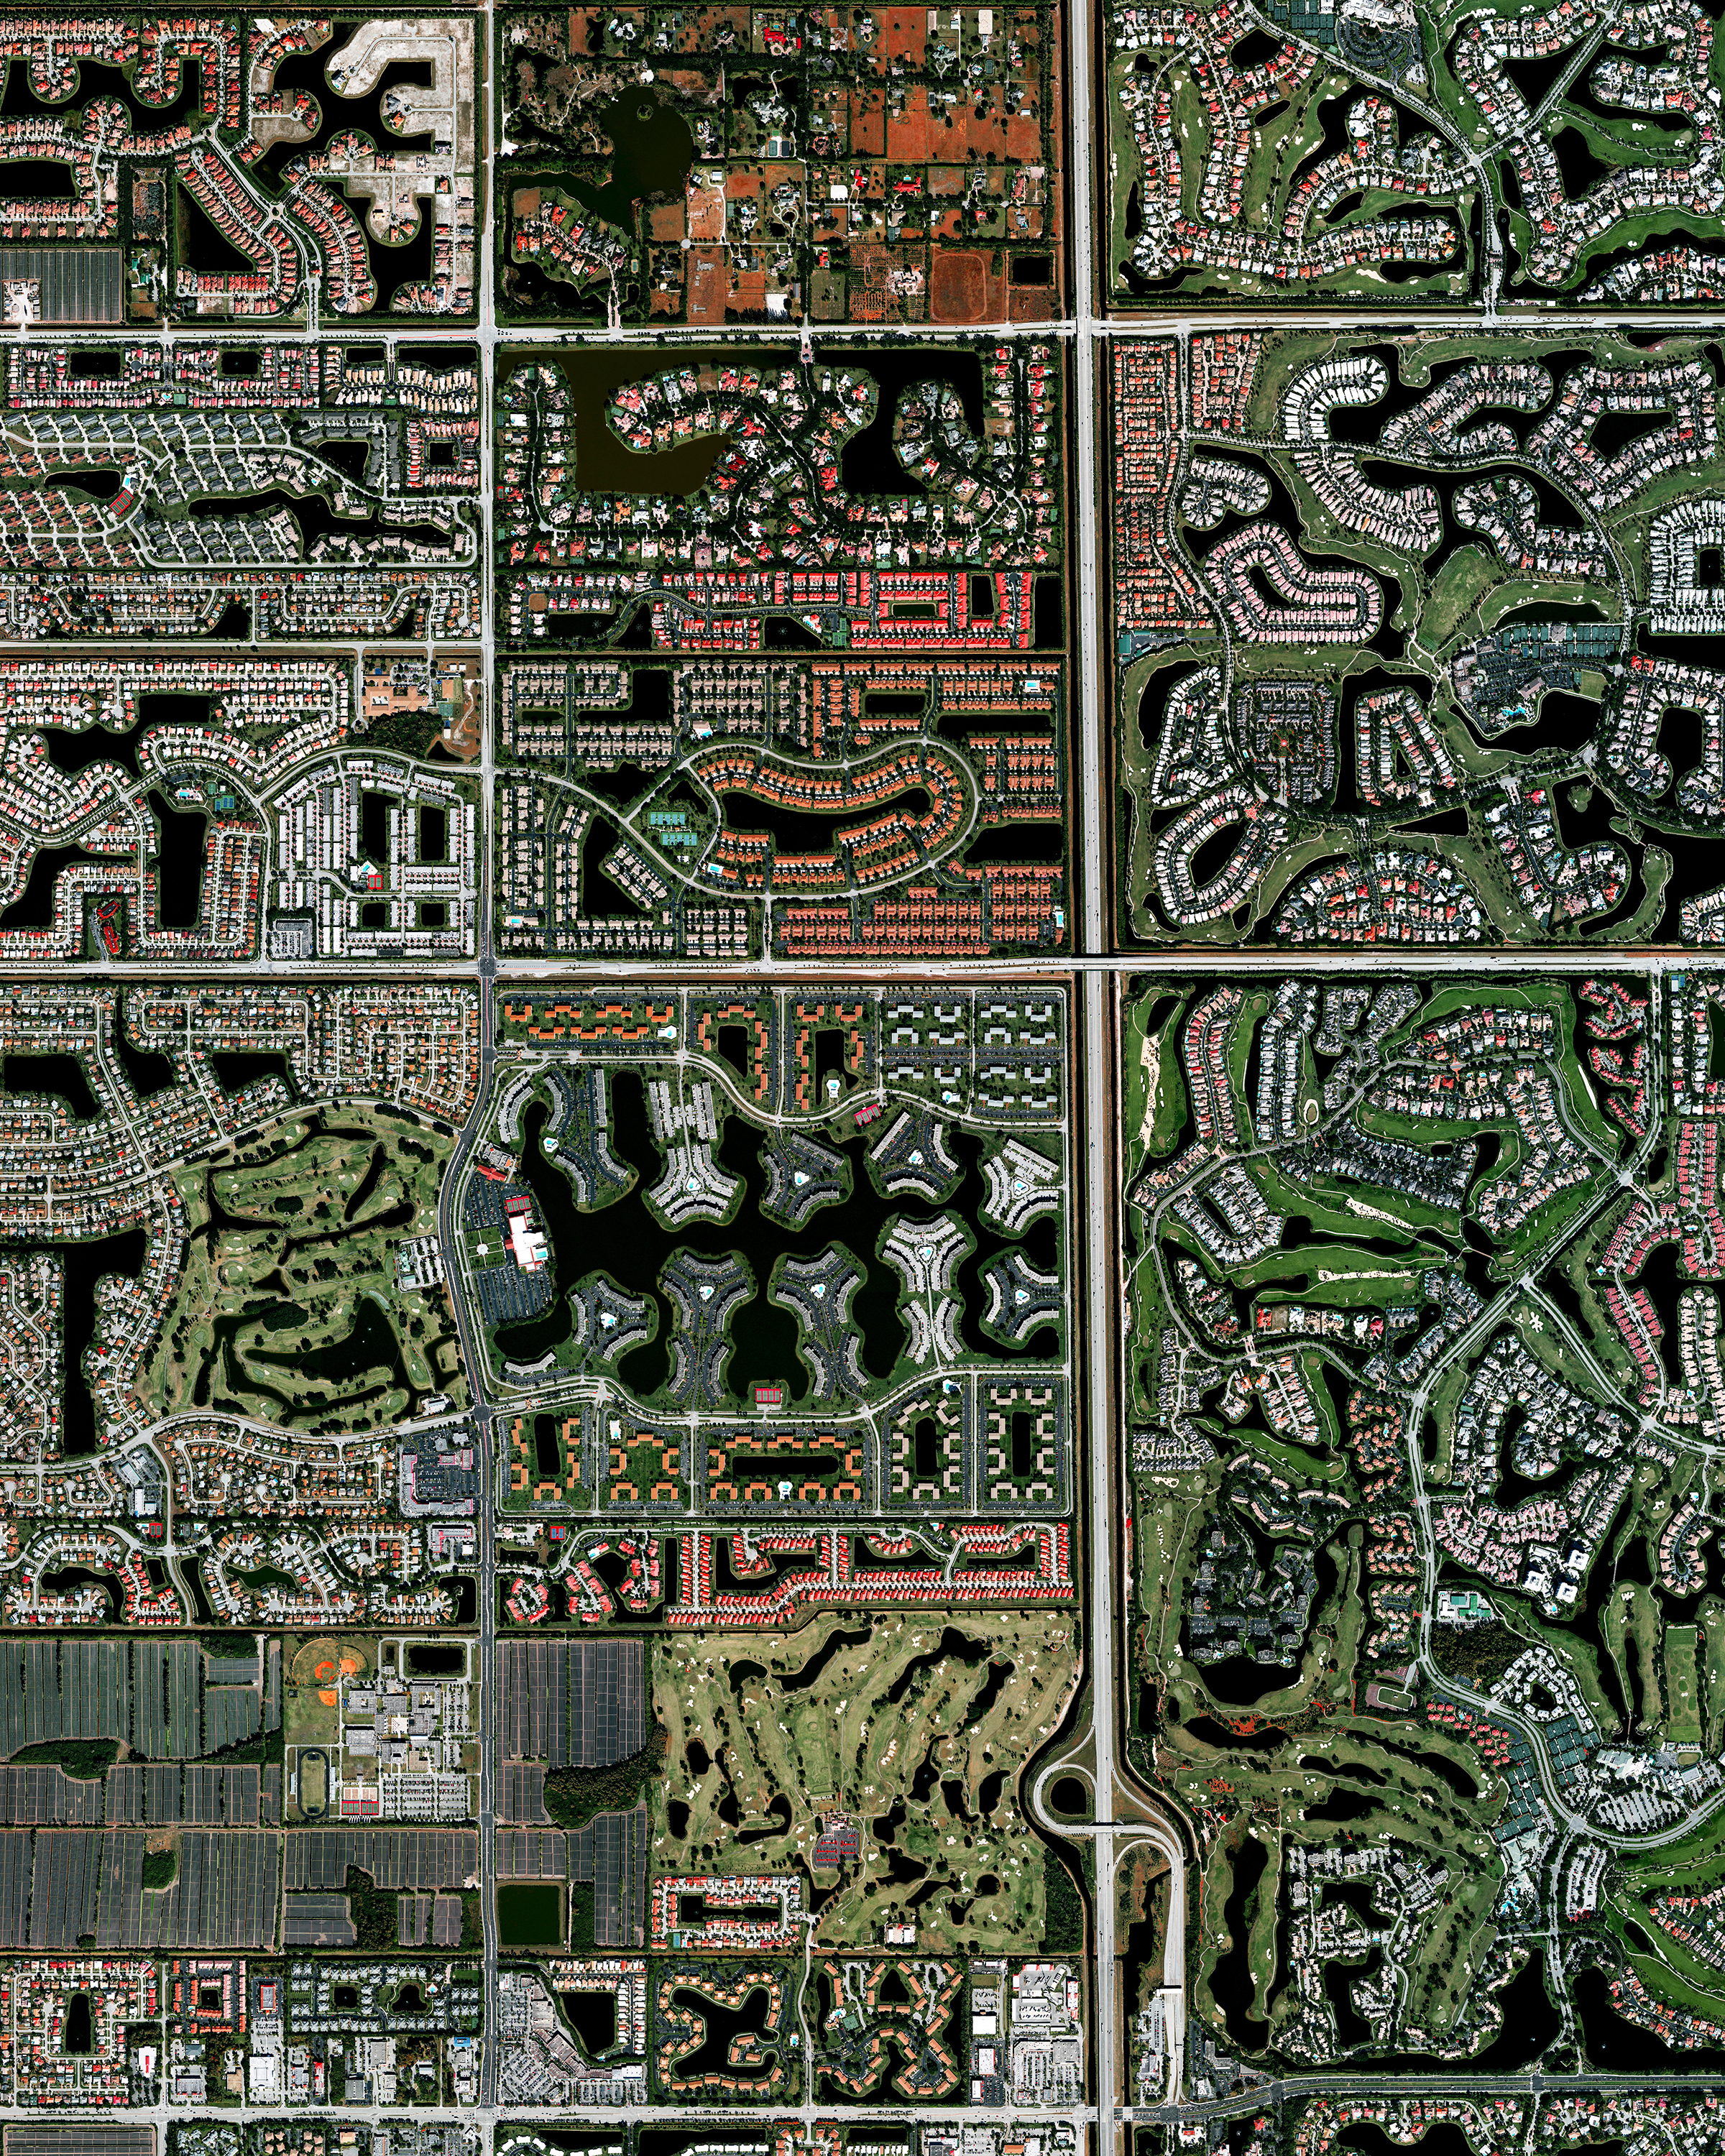 """Residential development is seen in Boca Raton, Florida, USA. Because many cities in the state contain master-planned communities, often built on top of waterways in the latter half of the twentieth century, there are a number of intricate designs that are visible from the Overview perspective. Boca Raton is home to roughly 91,000 residents.  26°23'10.8""""N, 80°10'47.7""""W  Source imagery: DigitalGlobe"""